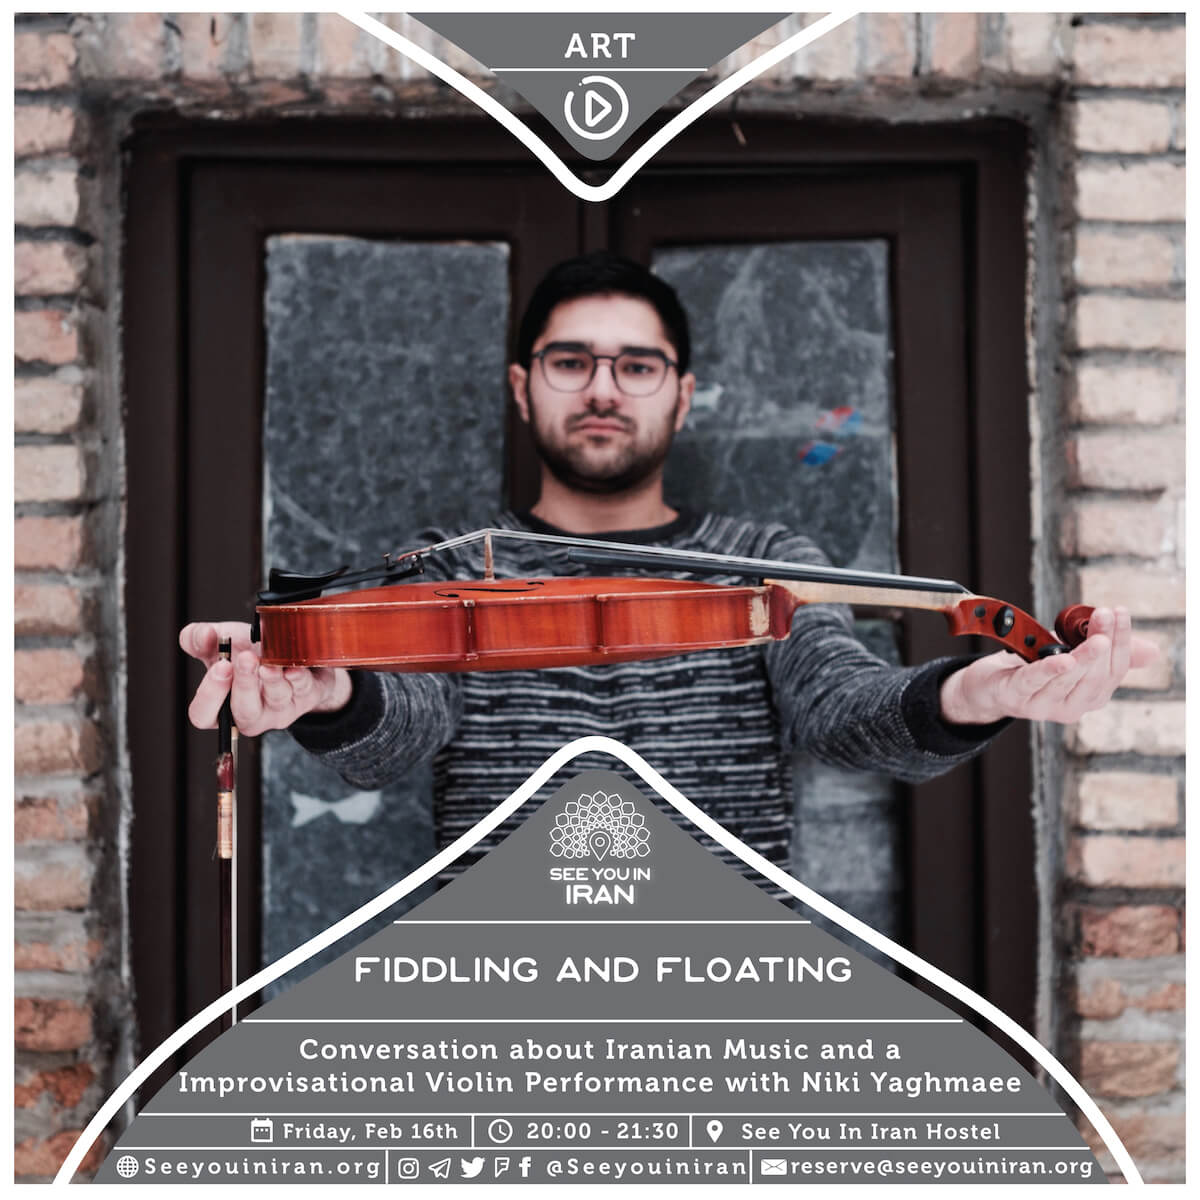 Fiddling and Floating: Conversation about Iranian Music